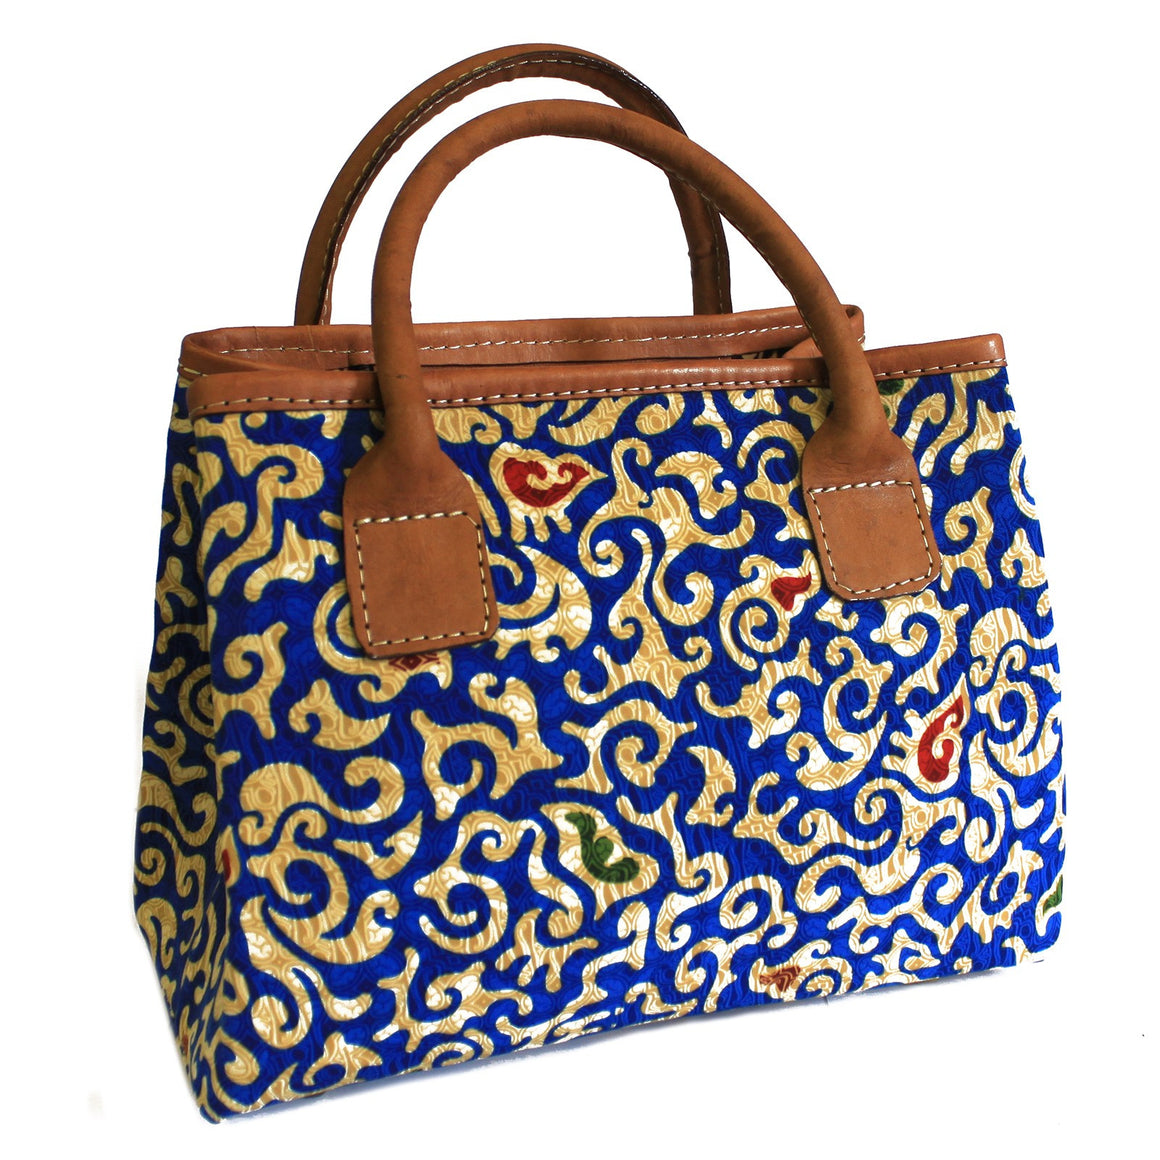 Bags, Balinese, Batik, Batik & Leather Bag, Blue, City Bag, Ethnic Bags, Executive Bag, Gift, Goatskin, India, Indian, Java, Leather, Leather & Batik Java Bags, Yogyakarta